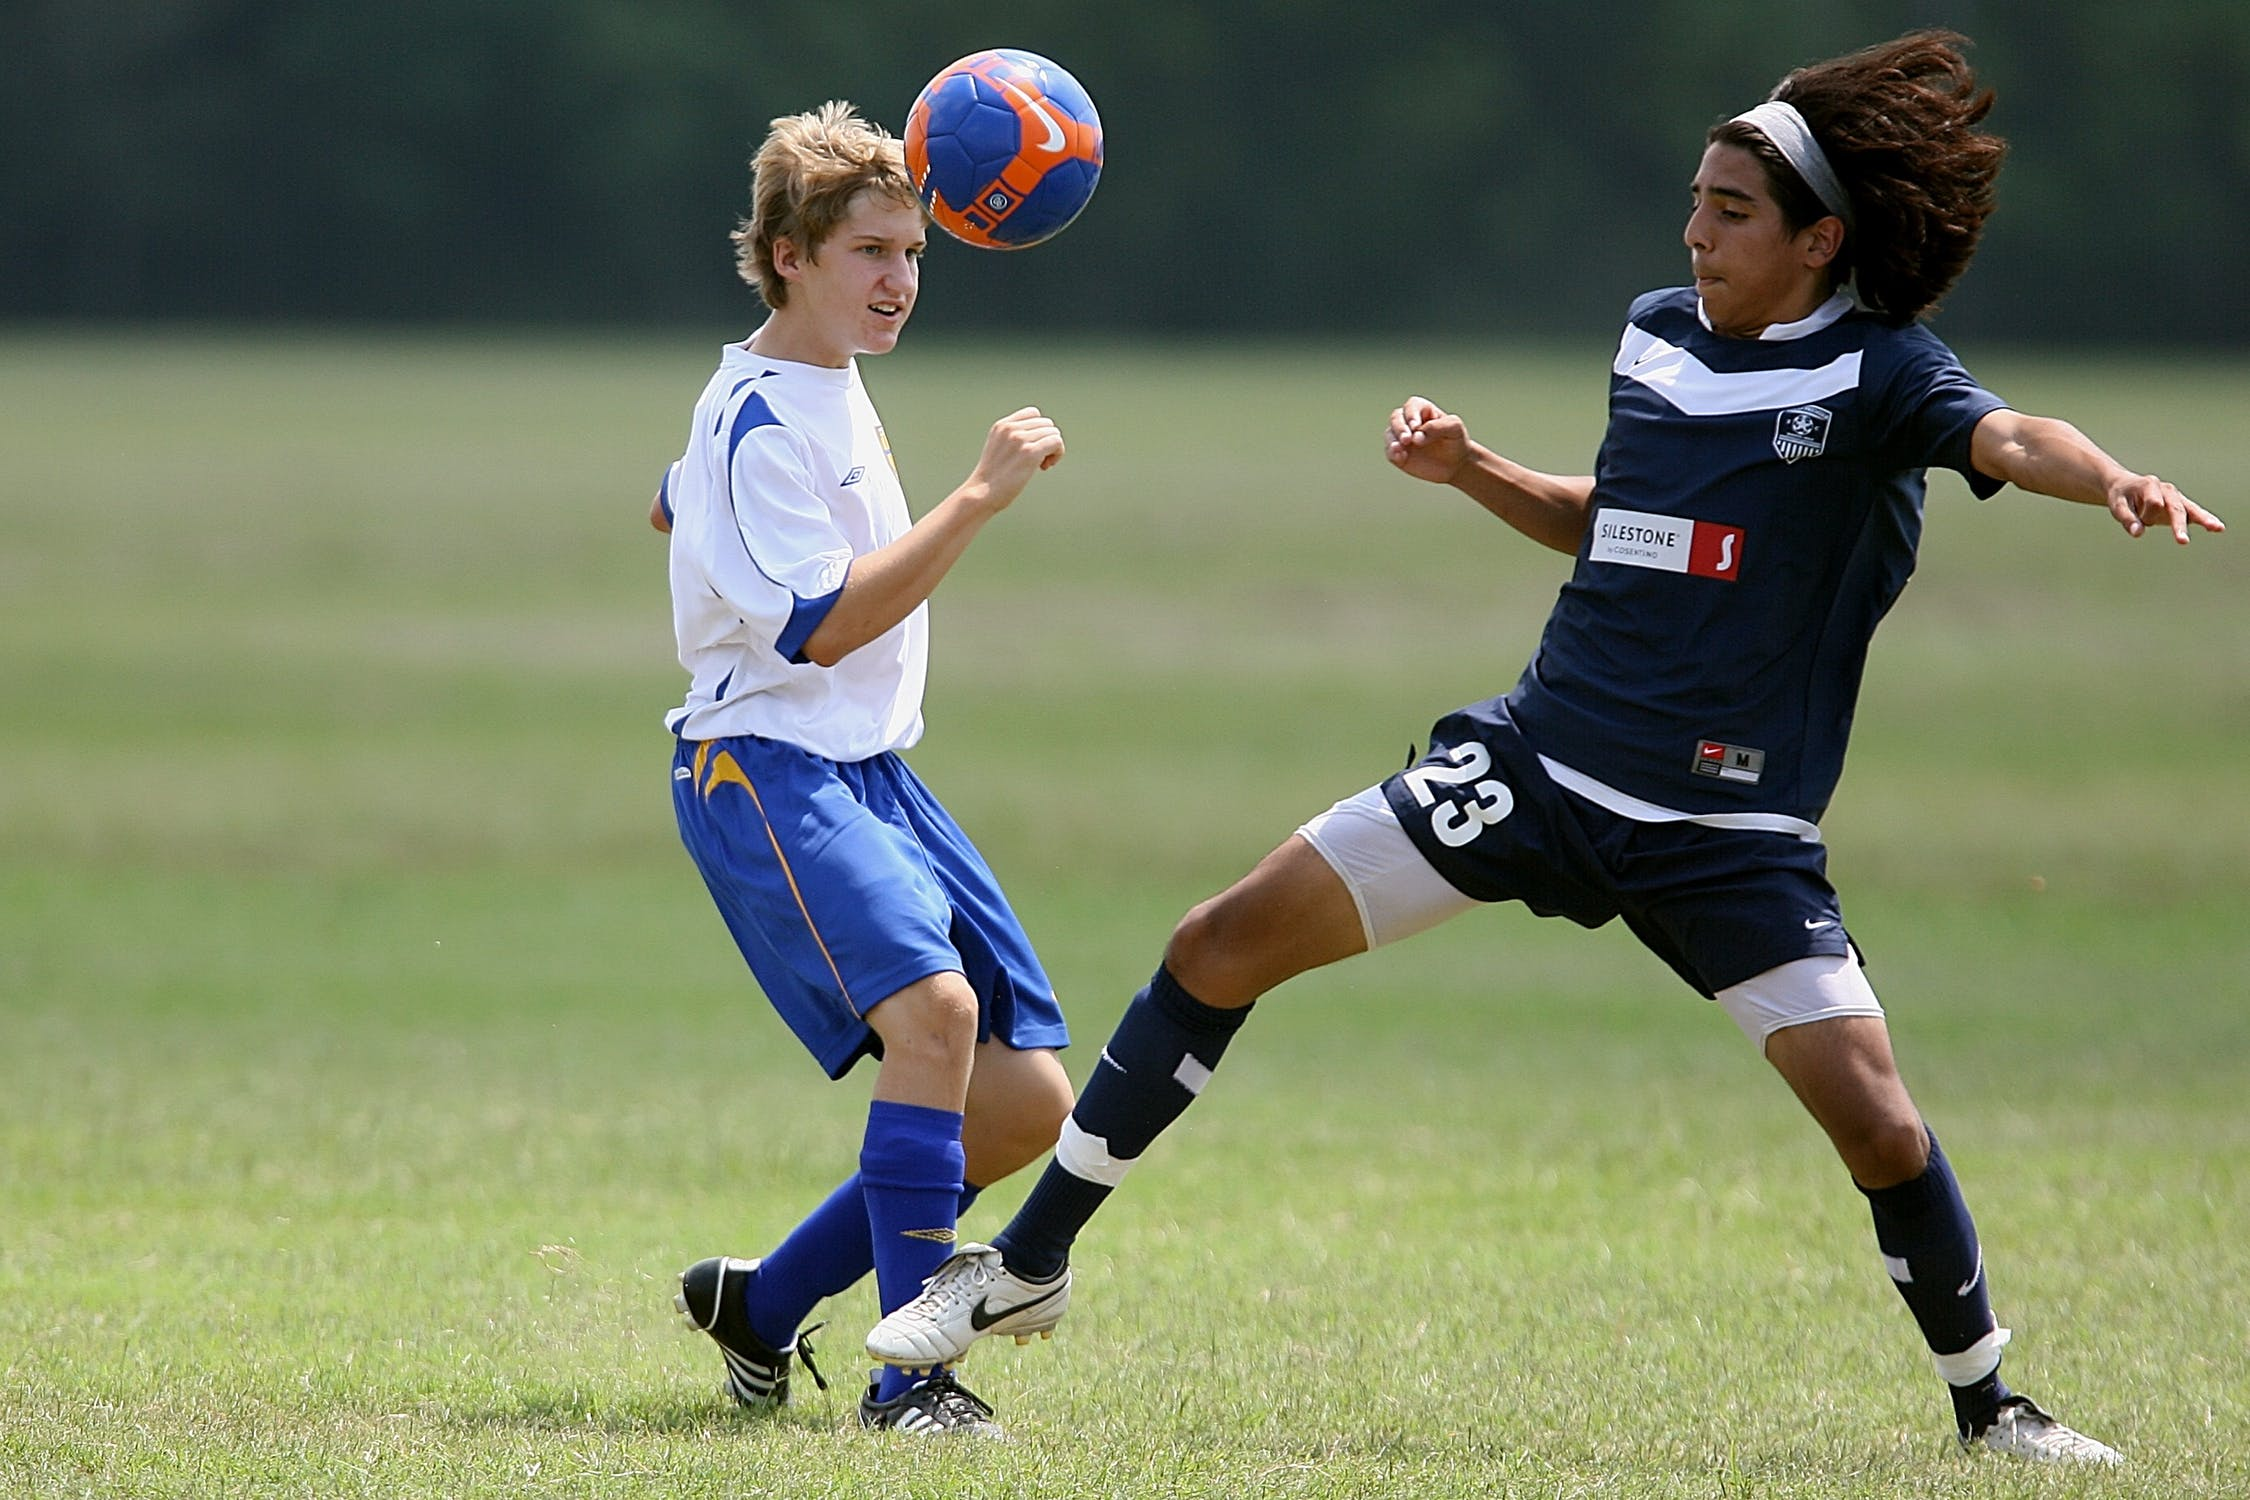 For young athletes, sport specialization means increased risk of injury